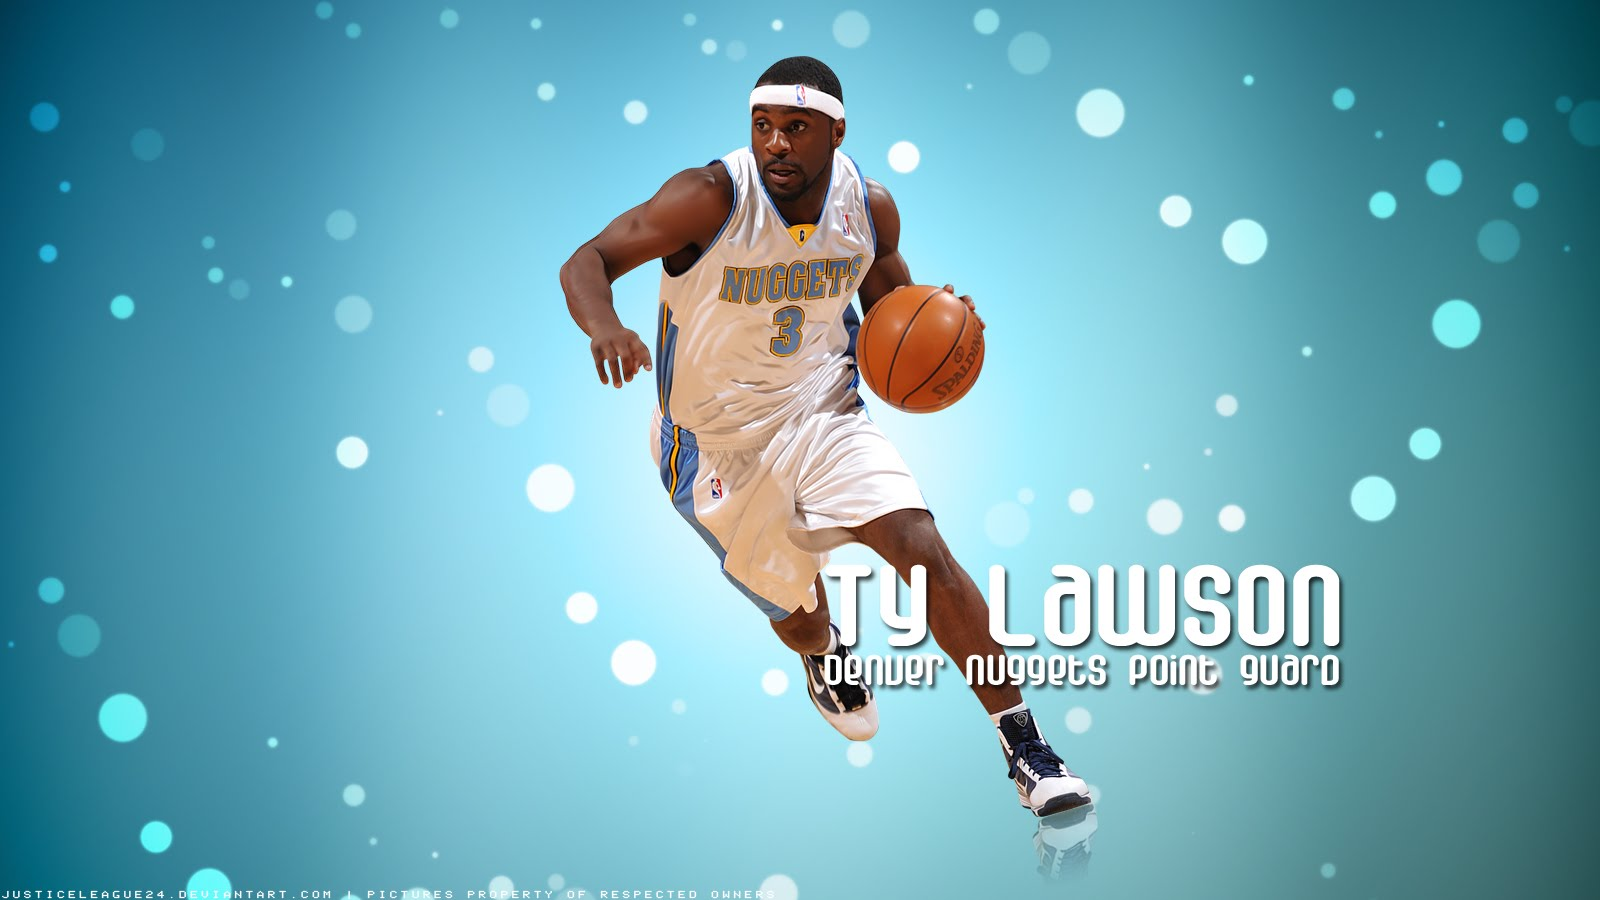 http://1.bp.blogspot.com/-0iV-dy2W7dc/T3YXGbHsHBI/AAAAAAAAABc/-aitI6nrrLY/s1600/Basketball+player+Ty+Lawson+wallpaper.jpg